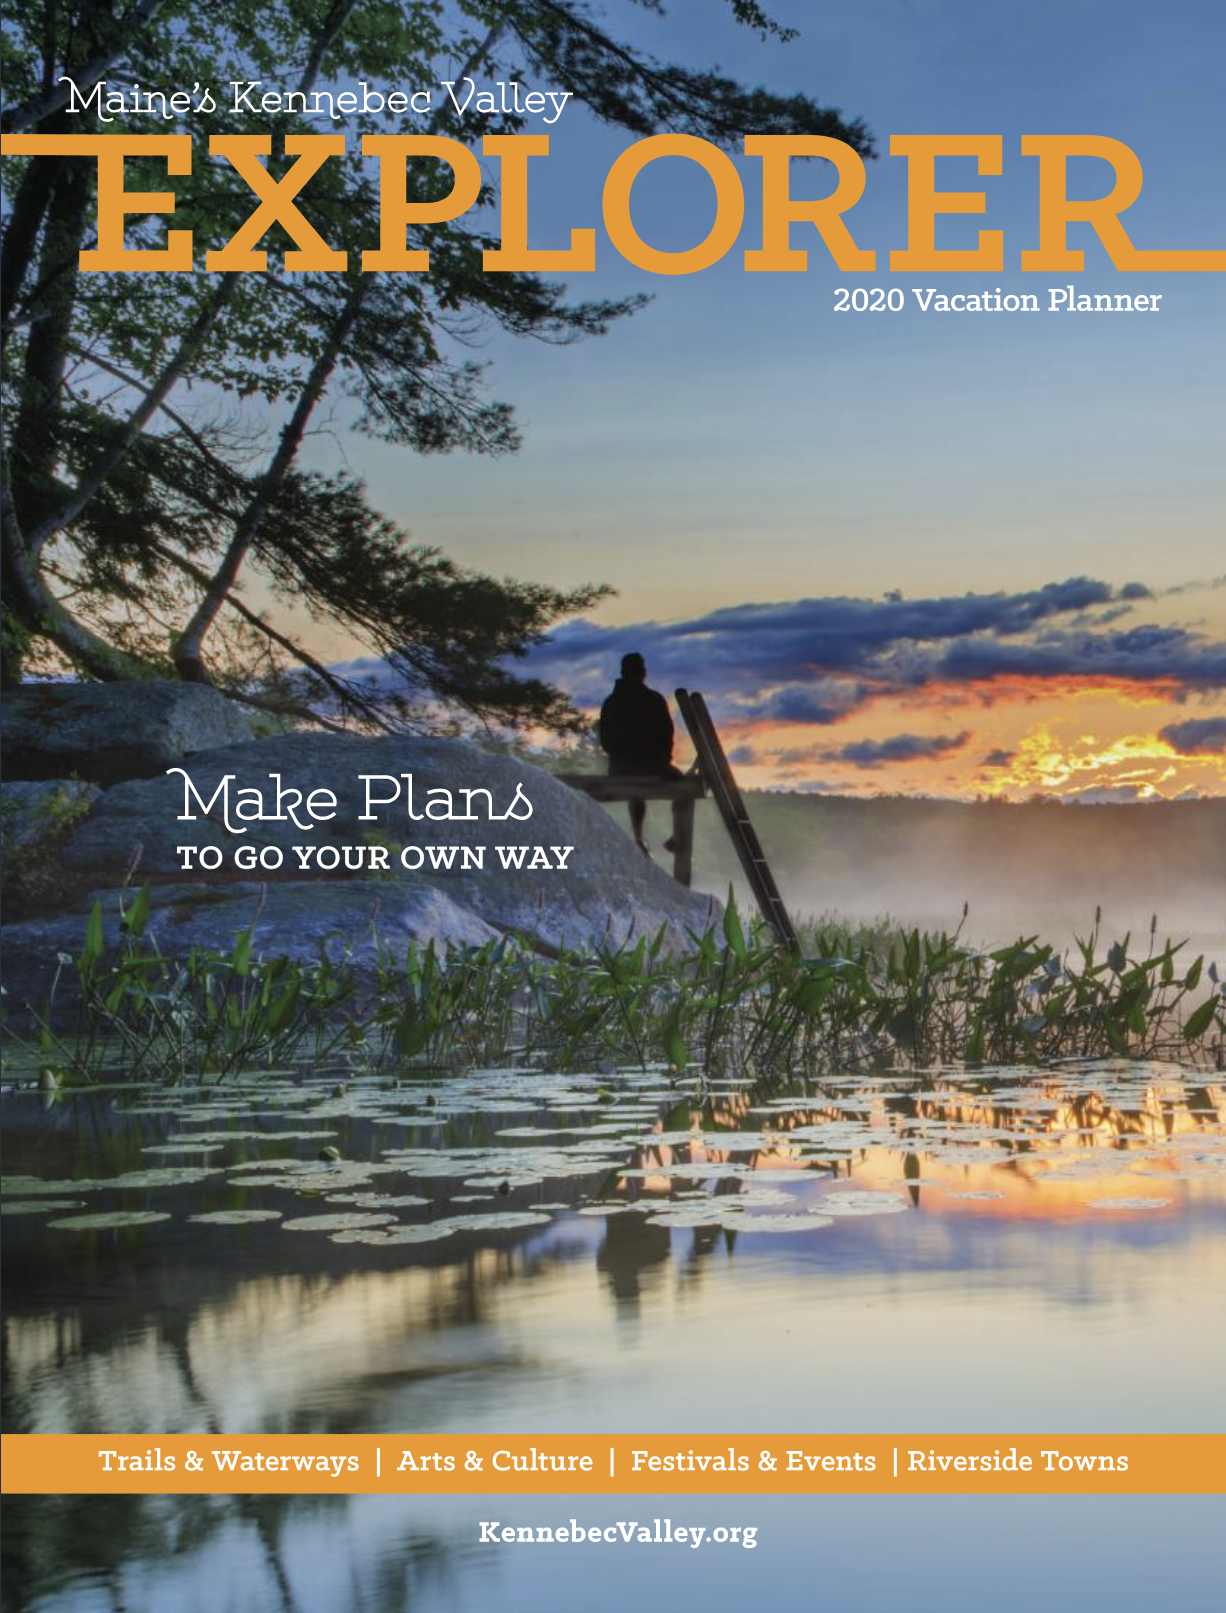 Kennebec Valley Explorer Cover 2020